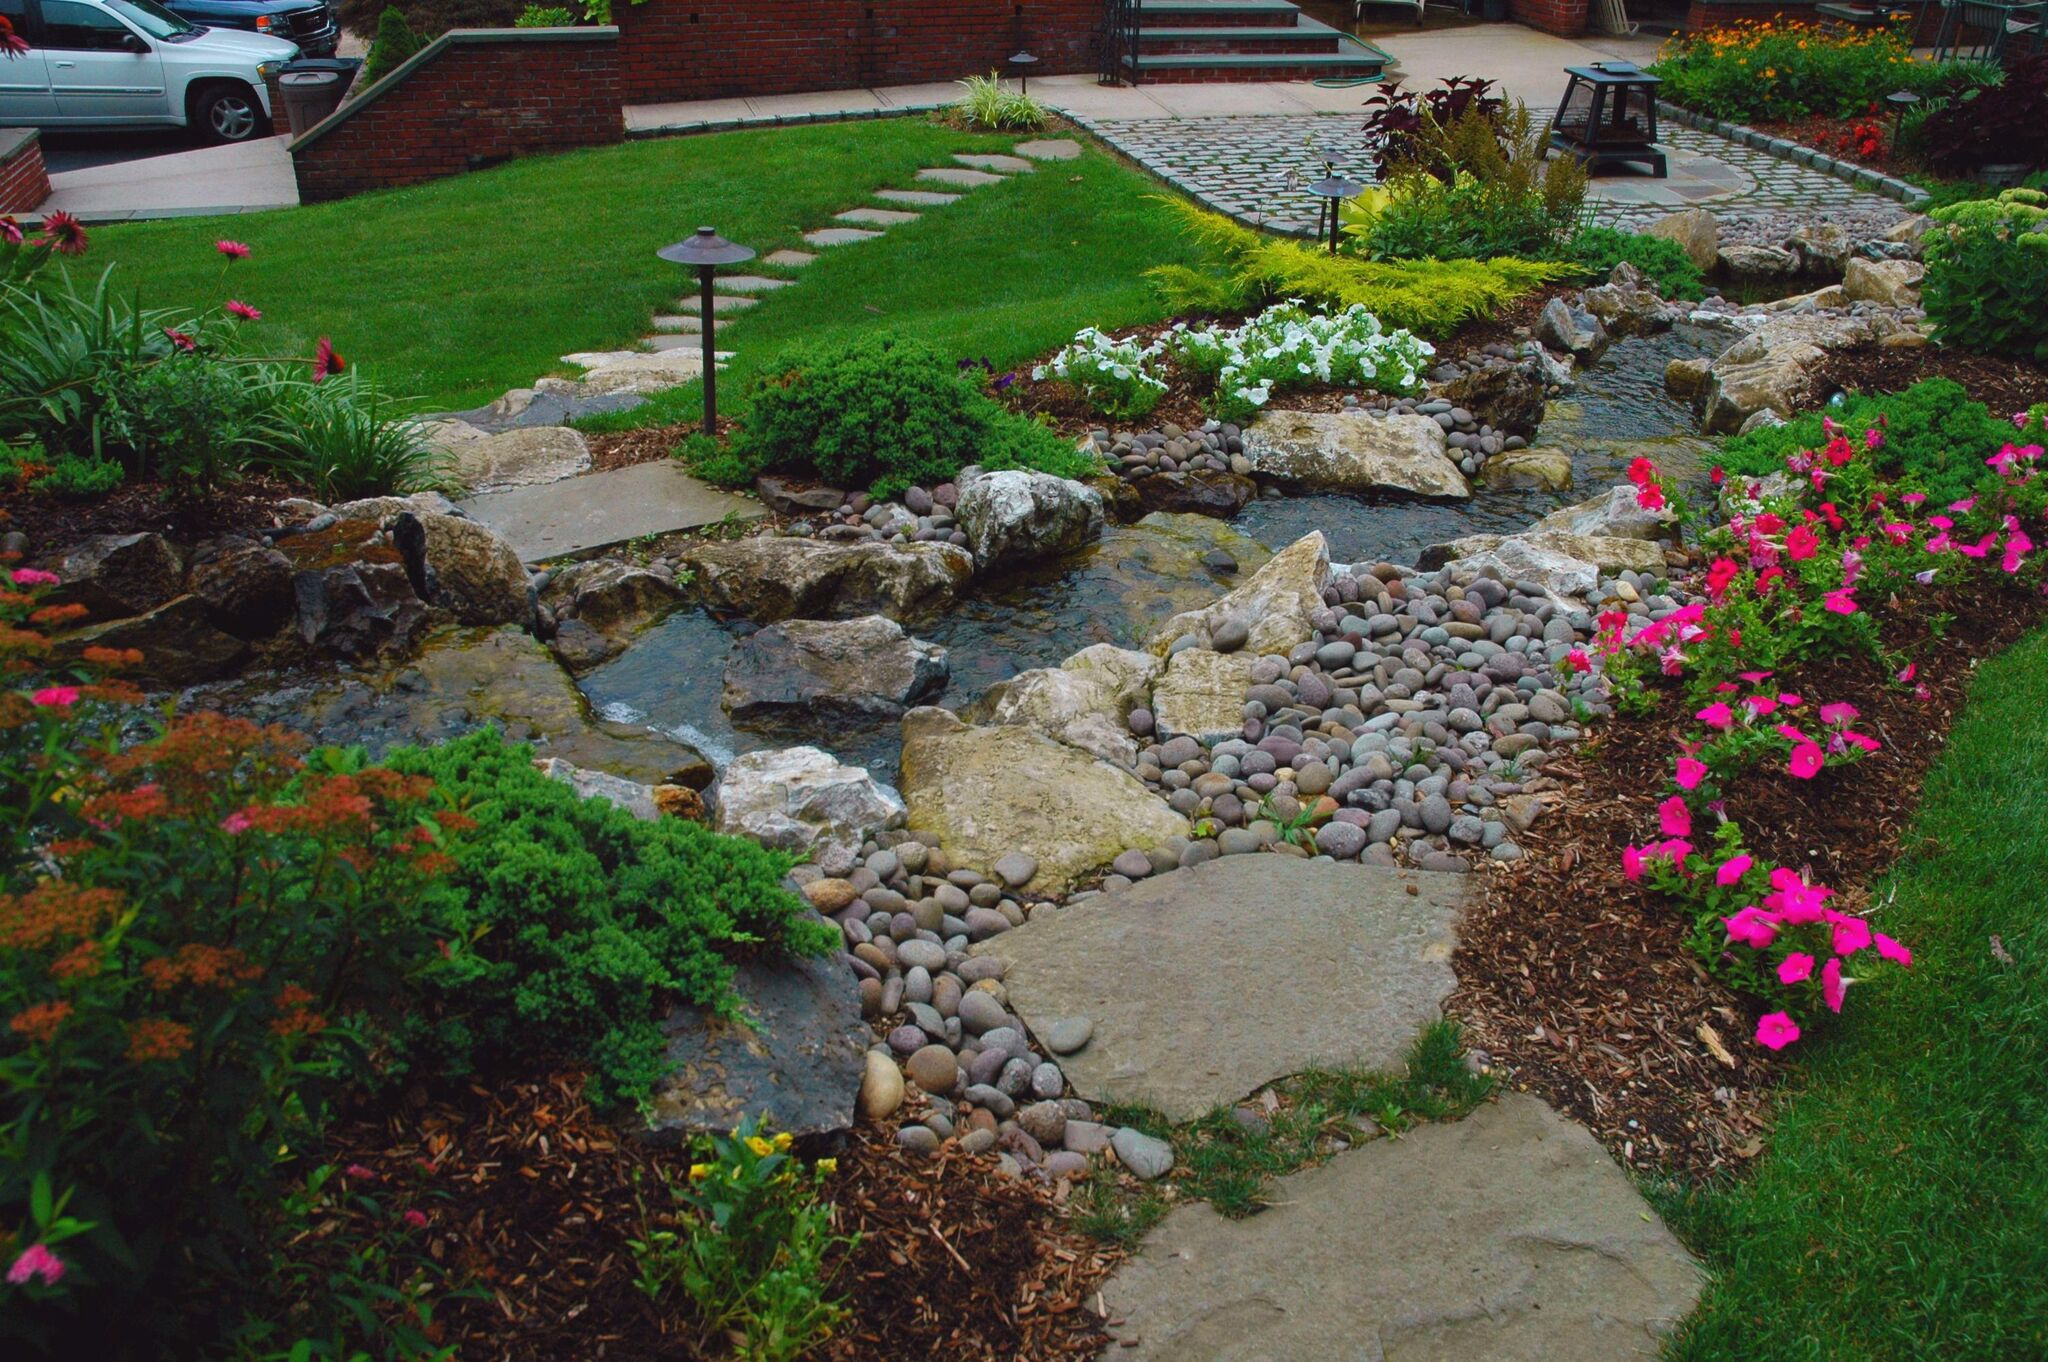 Lovely Landscaping with Rocks and Boulders